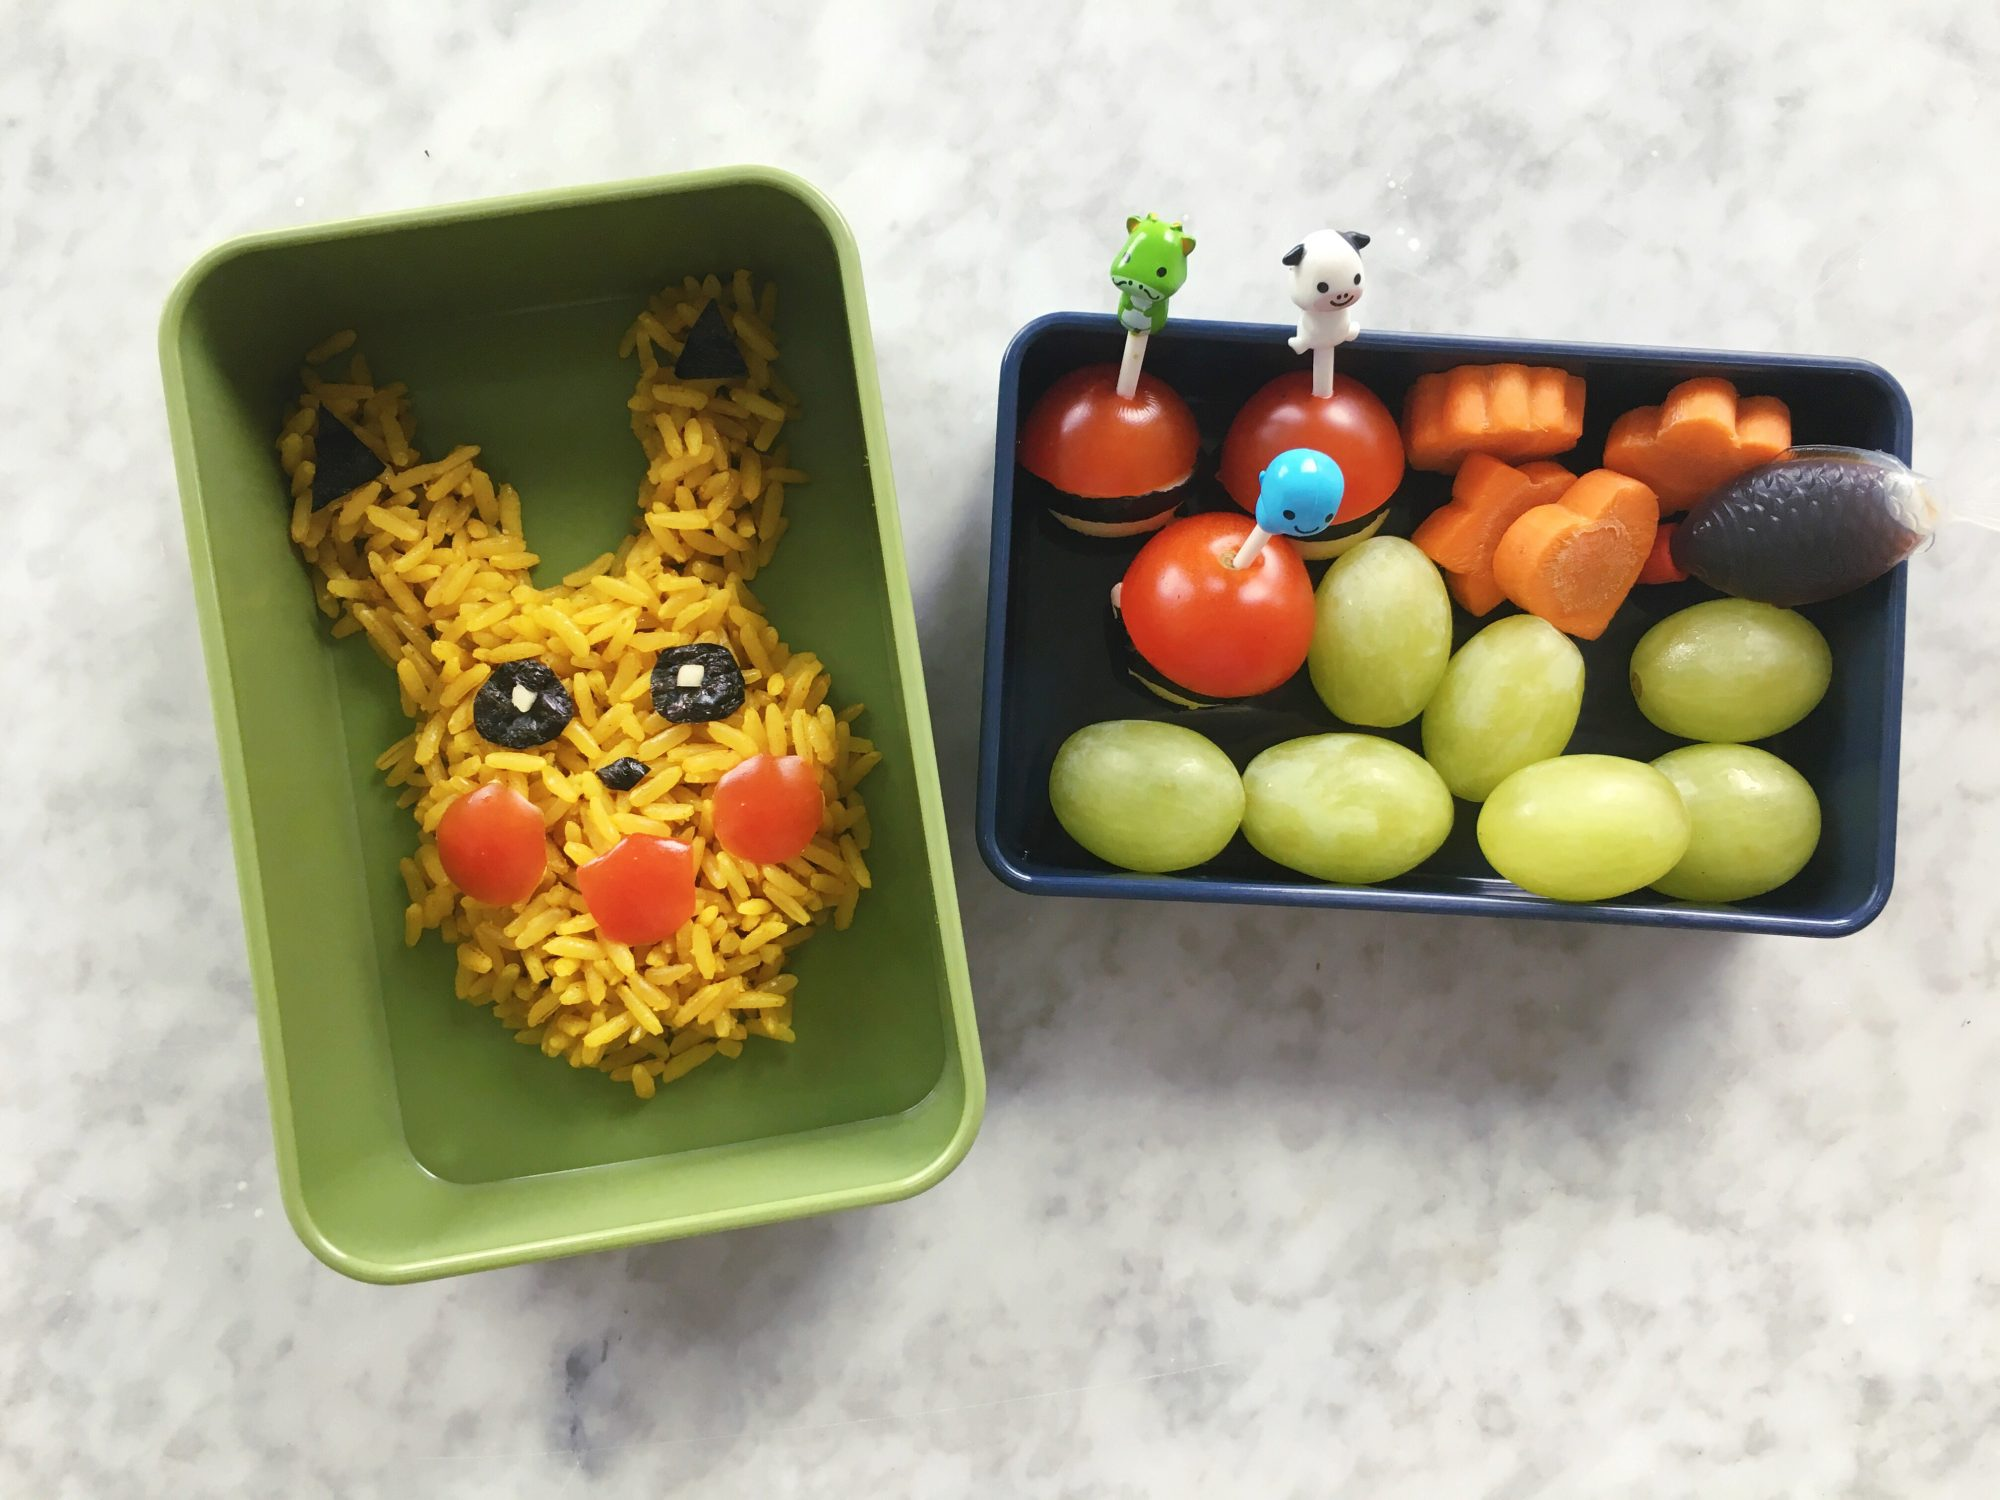 Pokémon To-Go for Lunch: How to Make a Pikachu Bento